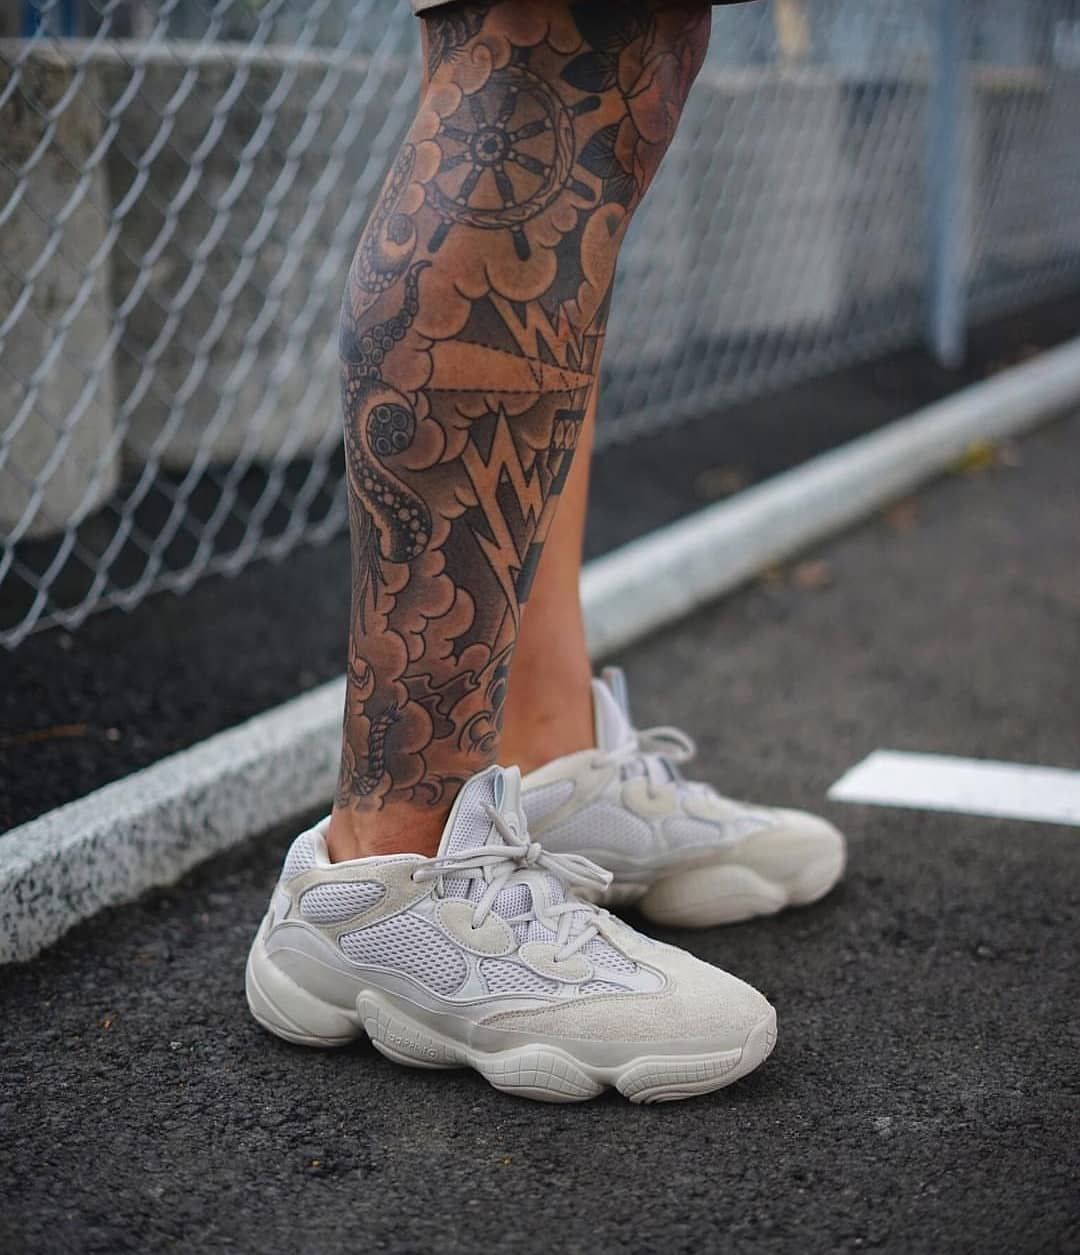 f1923a505f2883   wh1tie  in our invisible socks and the Yeezy 500 desert rats! What do you  think about the bulky dad sneaker style   SNOCKS  socks  sneaker  adidas   yeezy ...